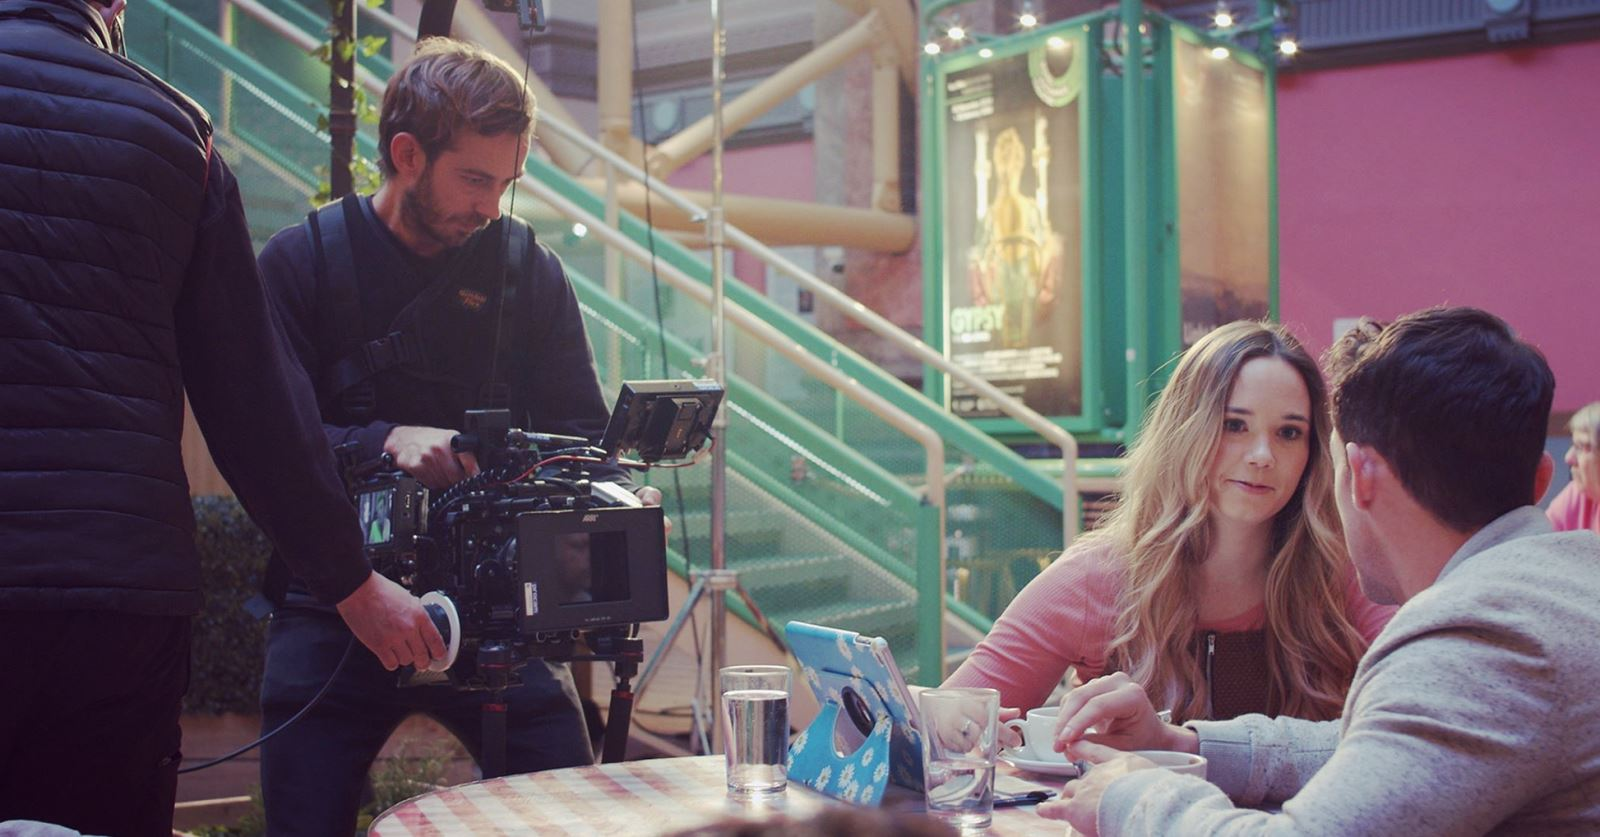 Welcome to new GTC member Jamie Kennerley - here shooting an NHS 'Stop Smoking' campaign on an ARRI ALEXA